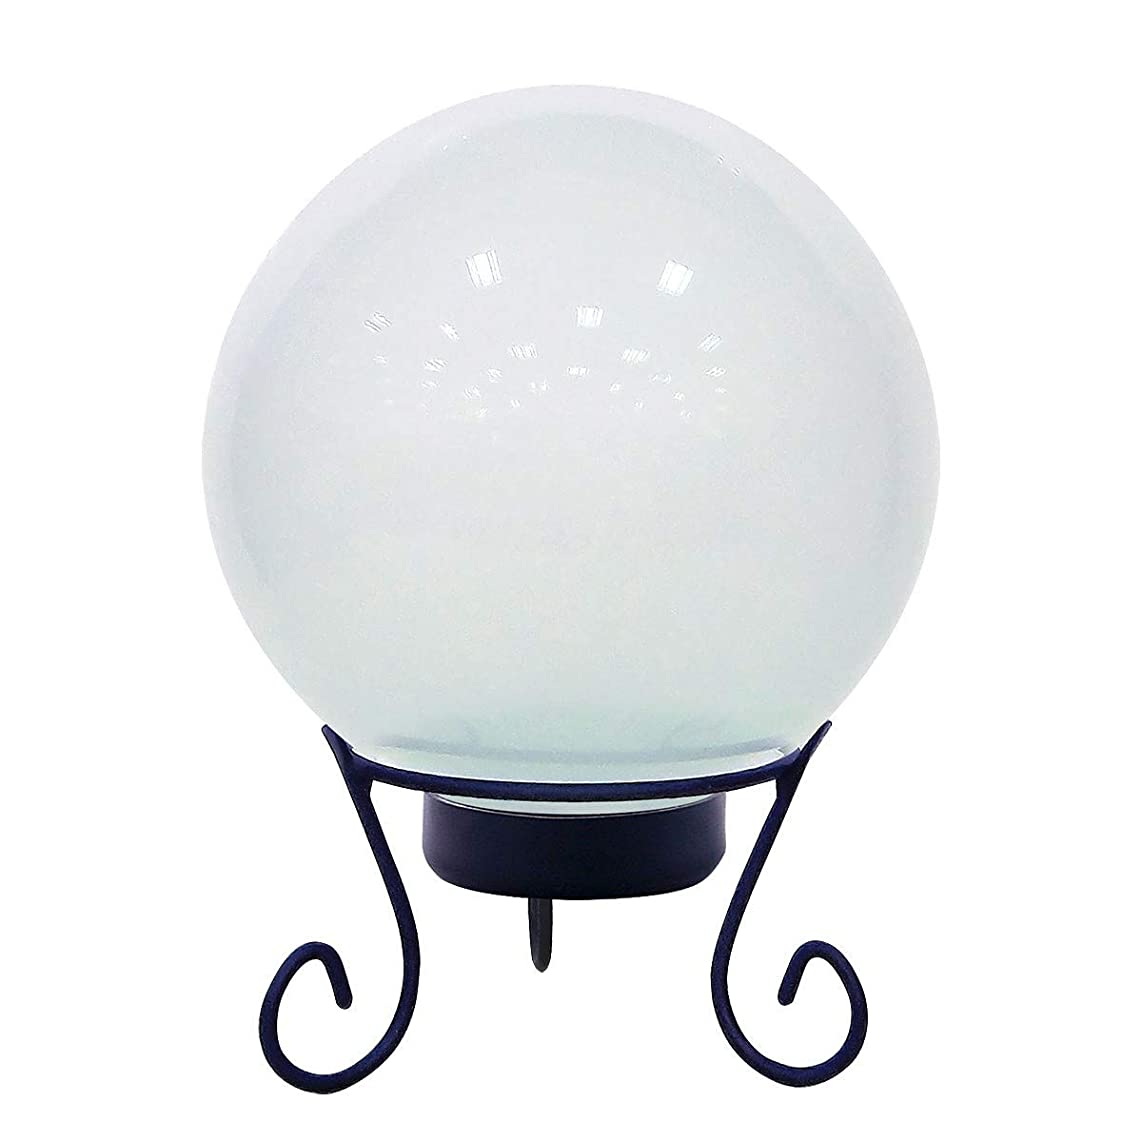 海洋脅迫シャツAlpine Corporation HGY312ACC-TM Gazing Globe with LED Lights, 10 Inch Tall, White 141[並行輸入]